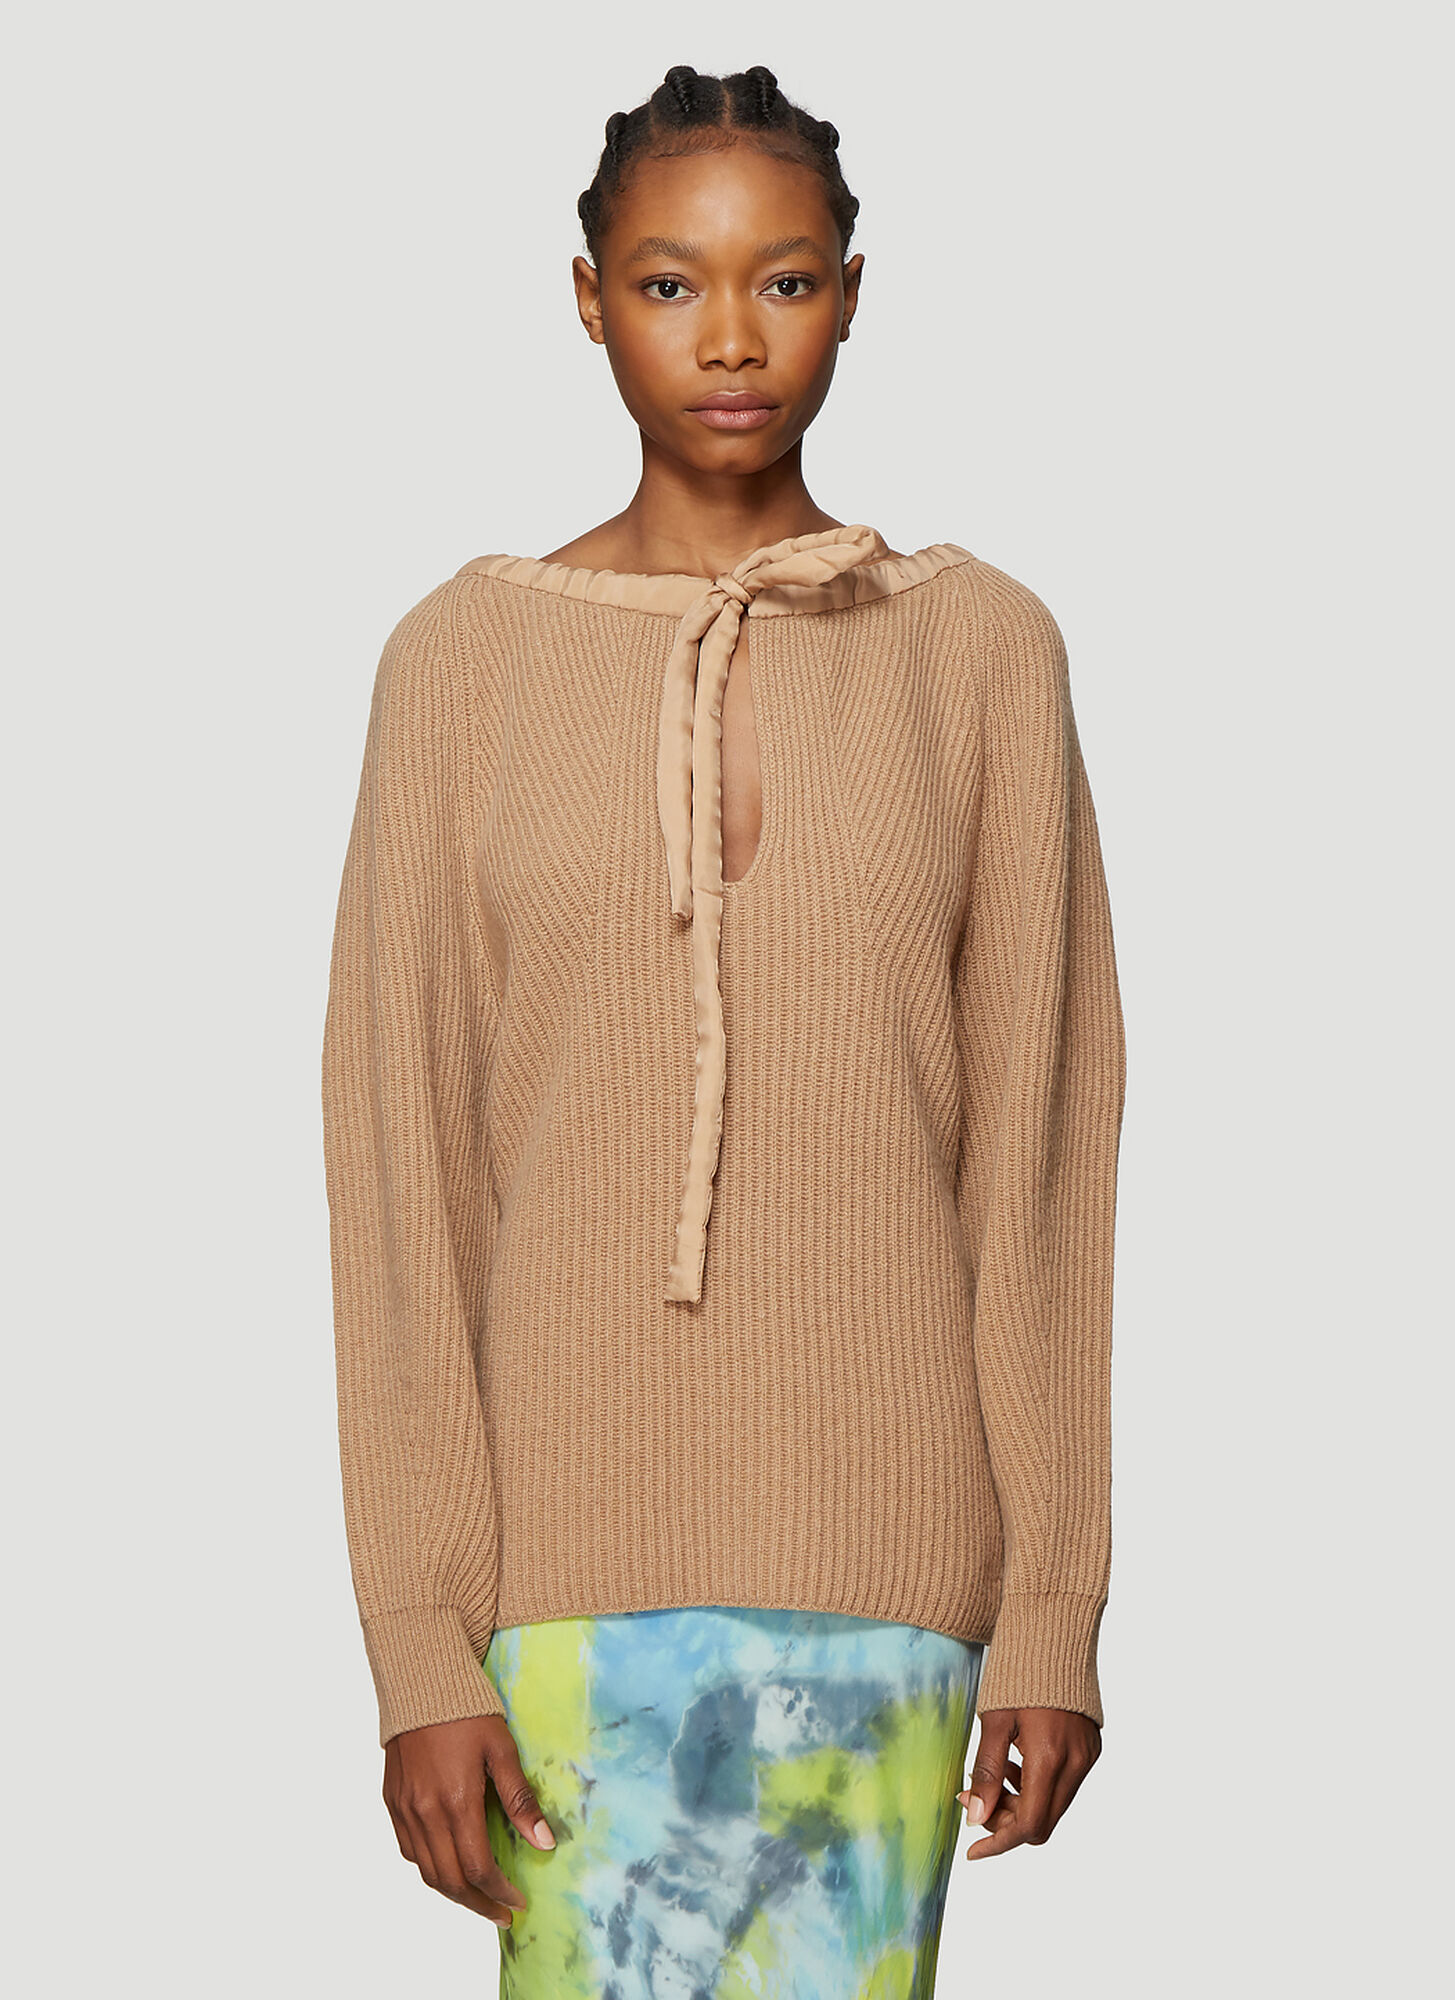 Stella McCartney Cold-Shoulder Sweater in Beige